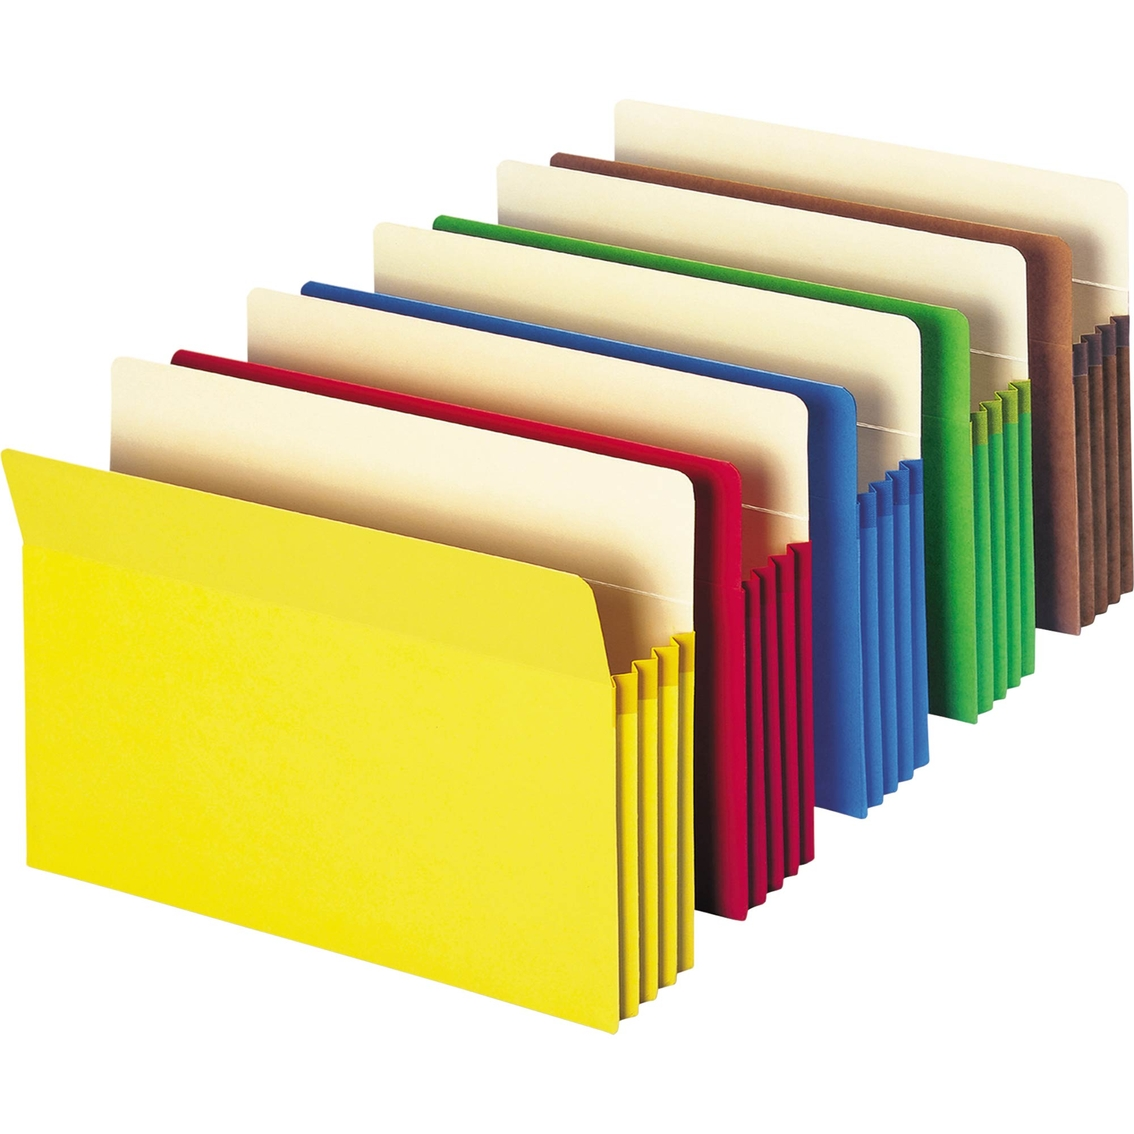 Smead 3 1/2 In. Expandable Colored File Pocket, Straight